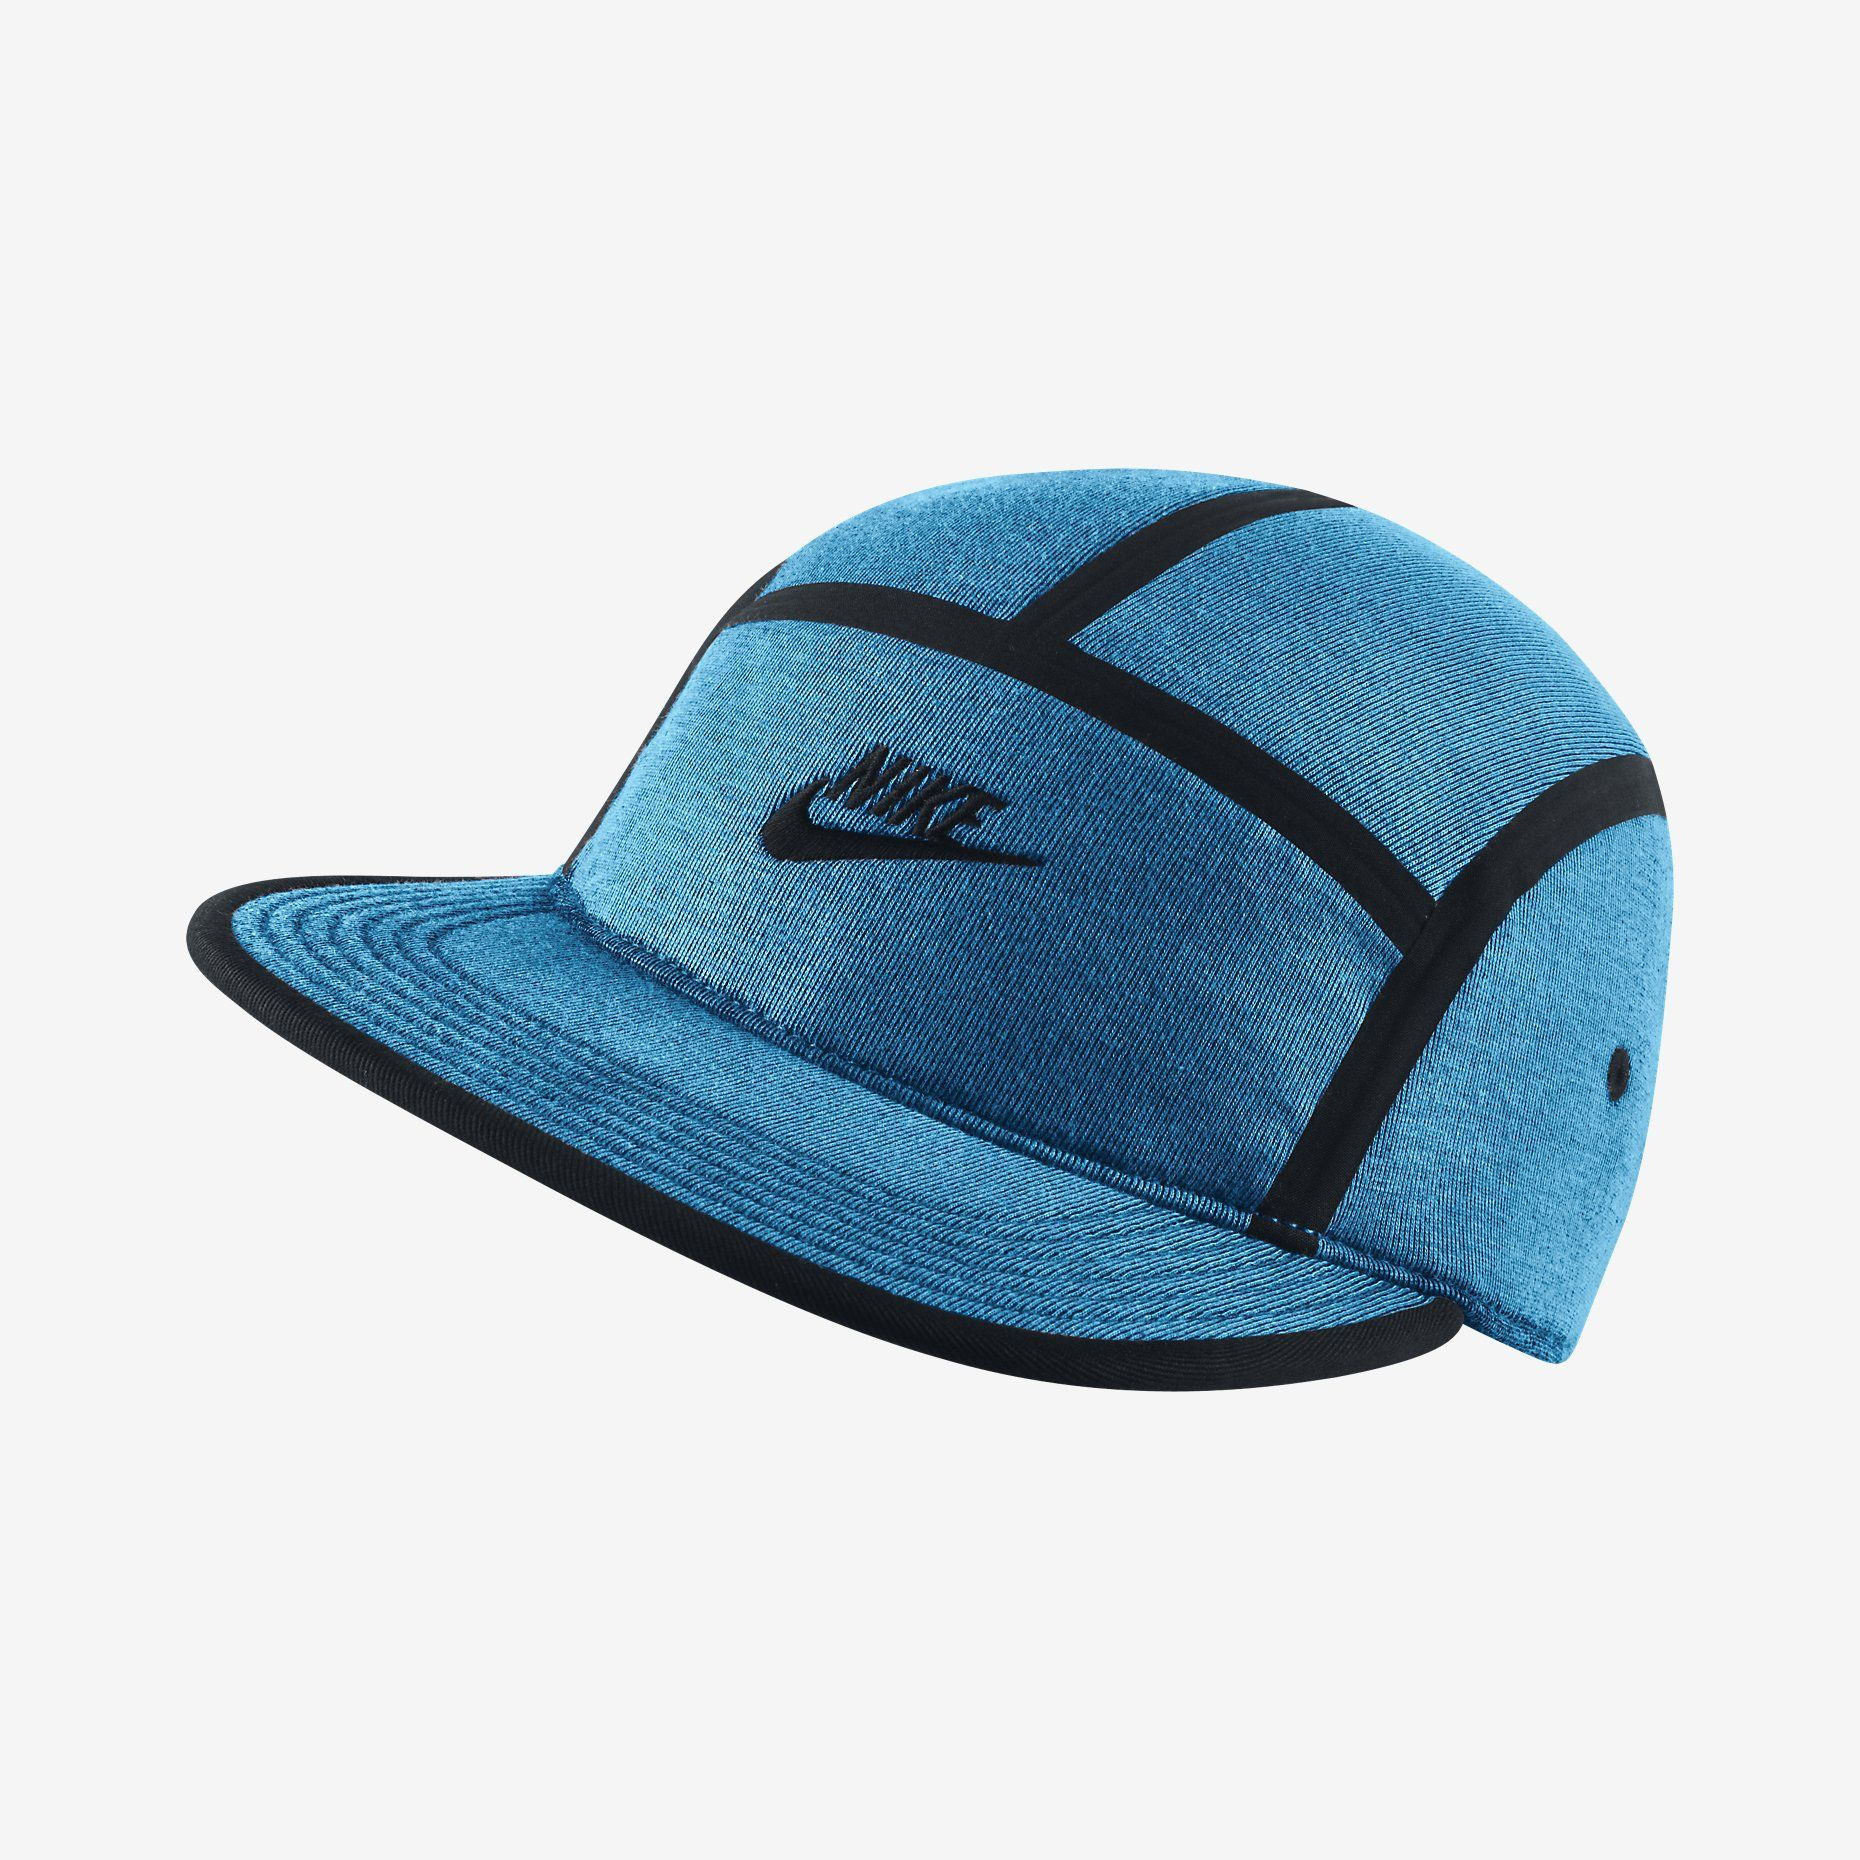 723db3d544c Nike AW84 Tech Pack Adjustable Hat. Nike Store